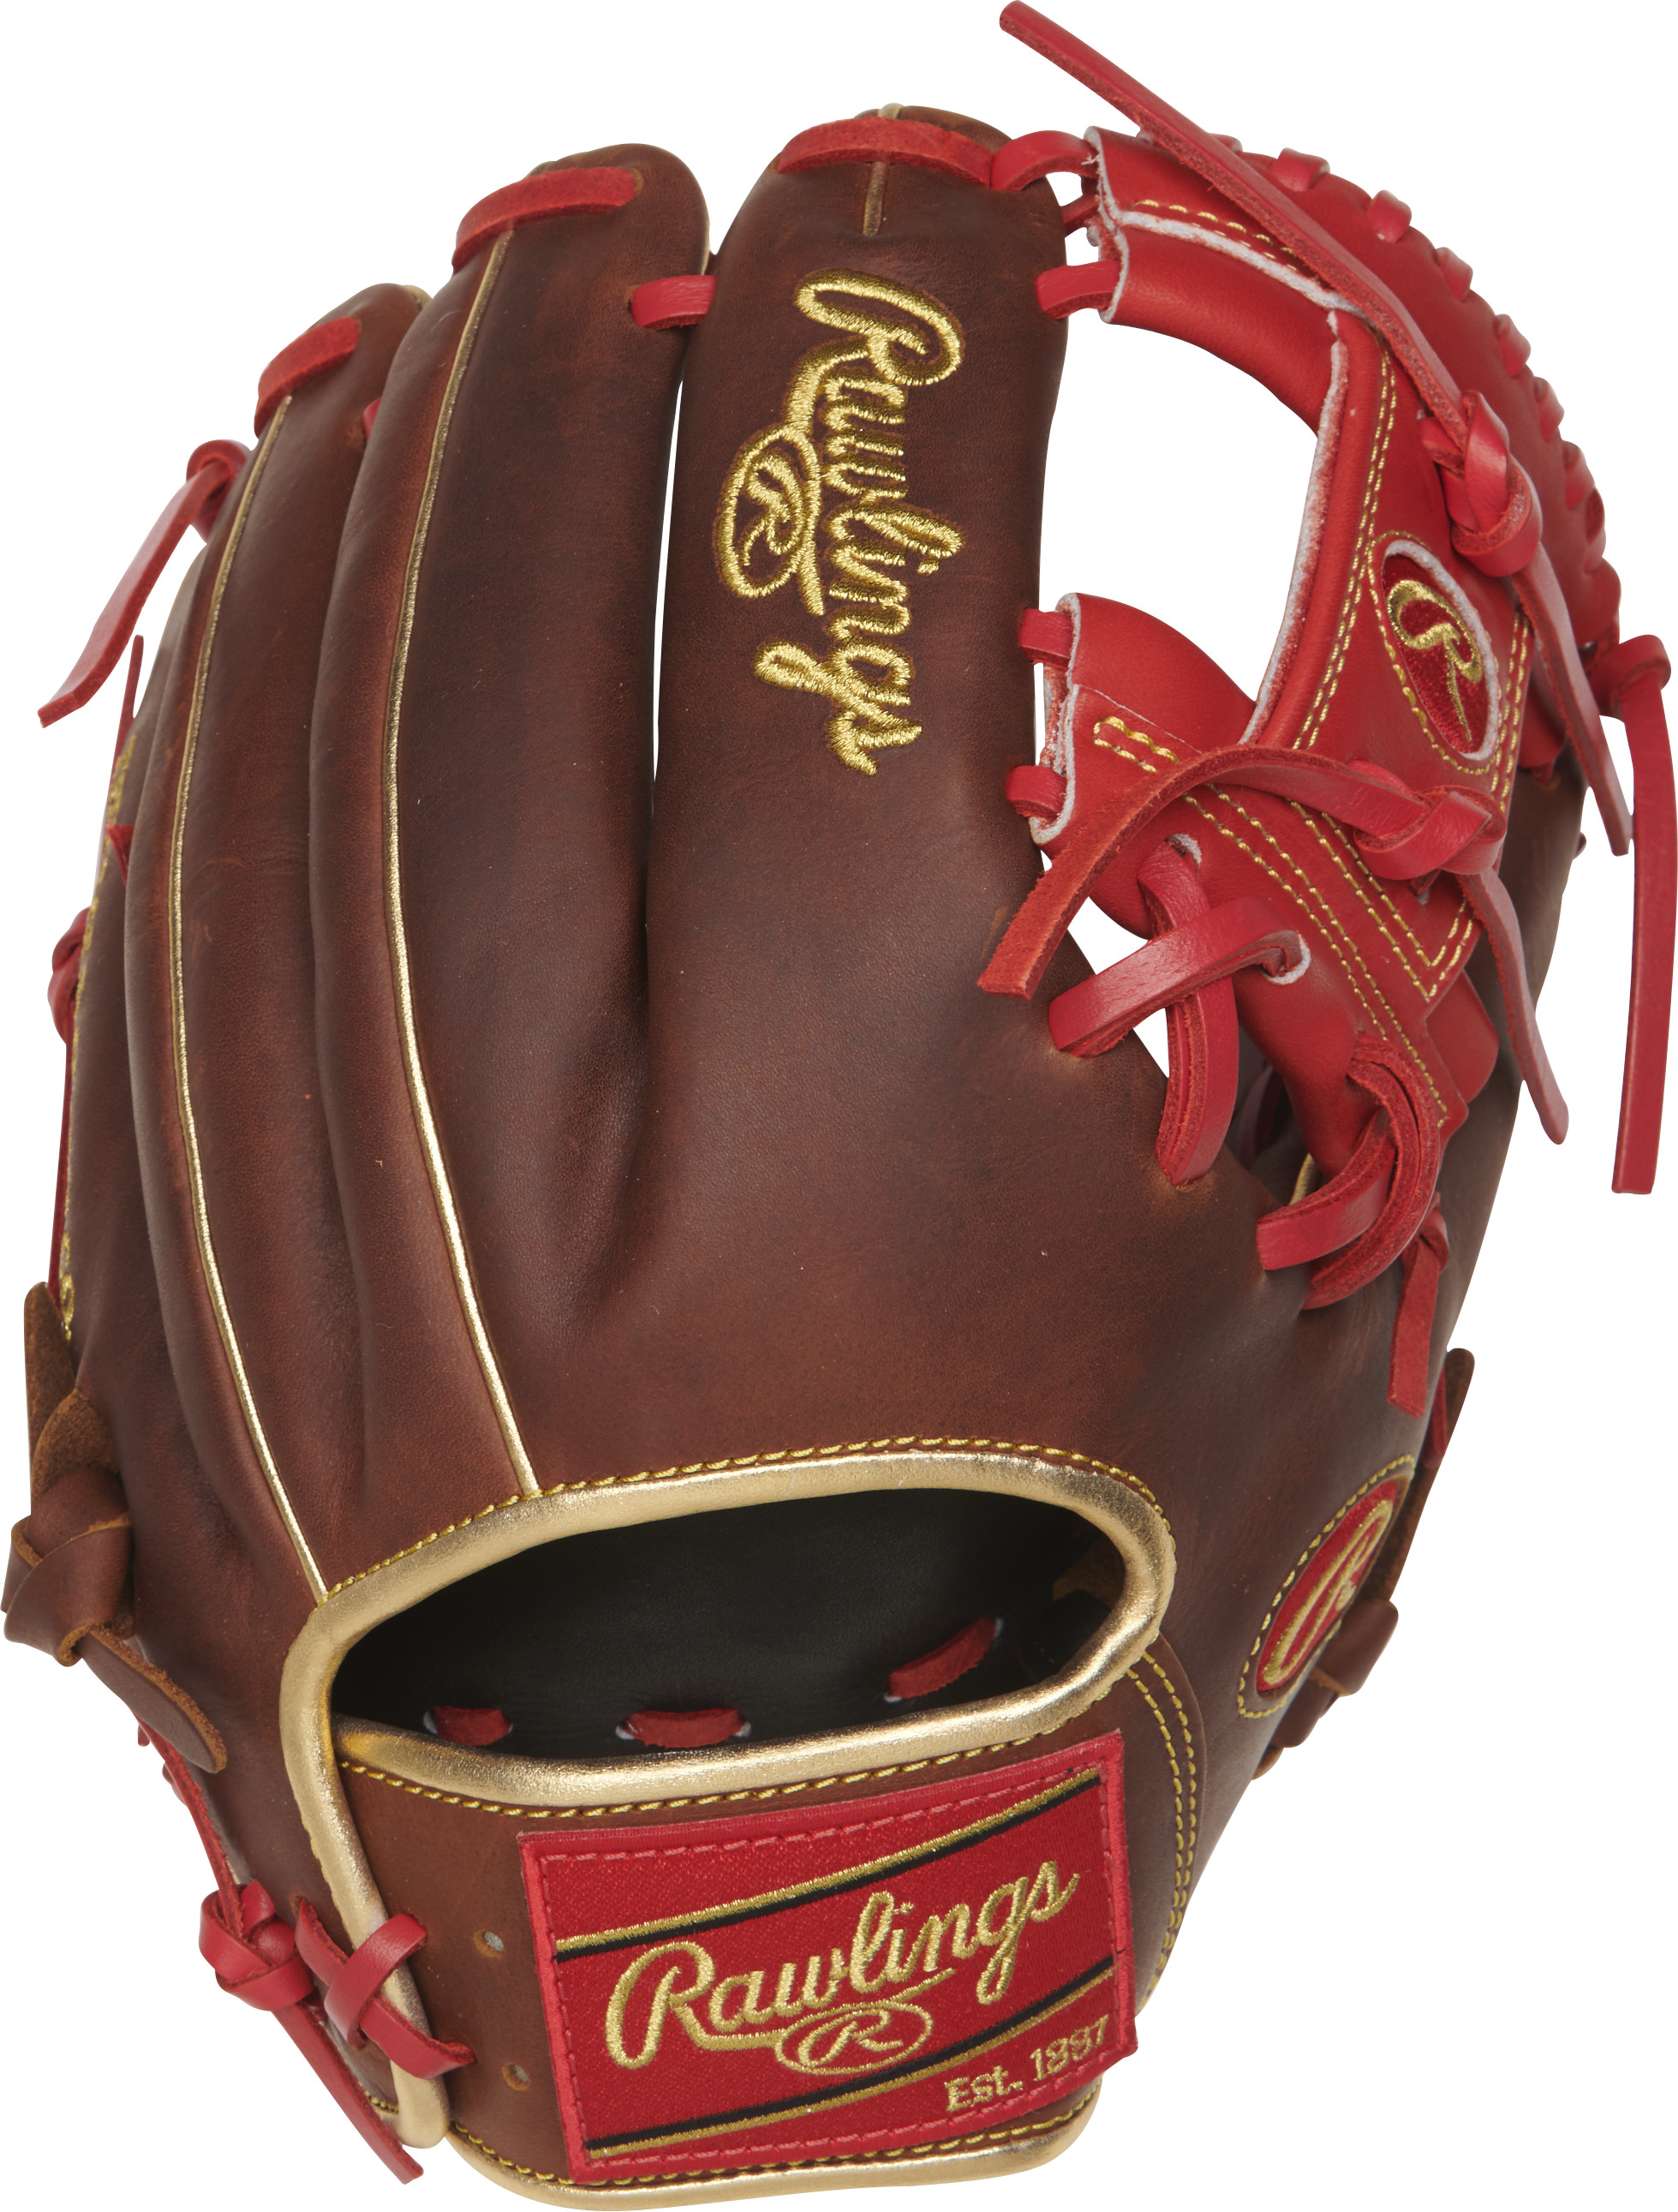 http://www.bestbatdeals.com/images/gloves/rawlings/PRO204-2TIG-2.jpg